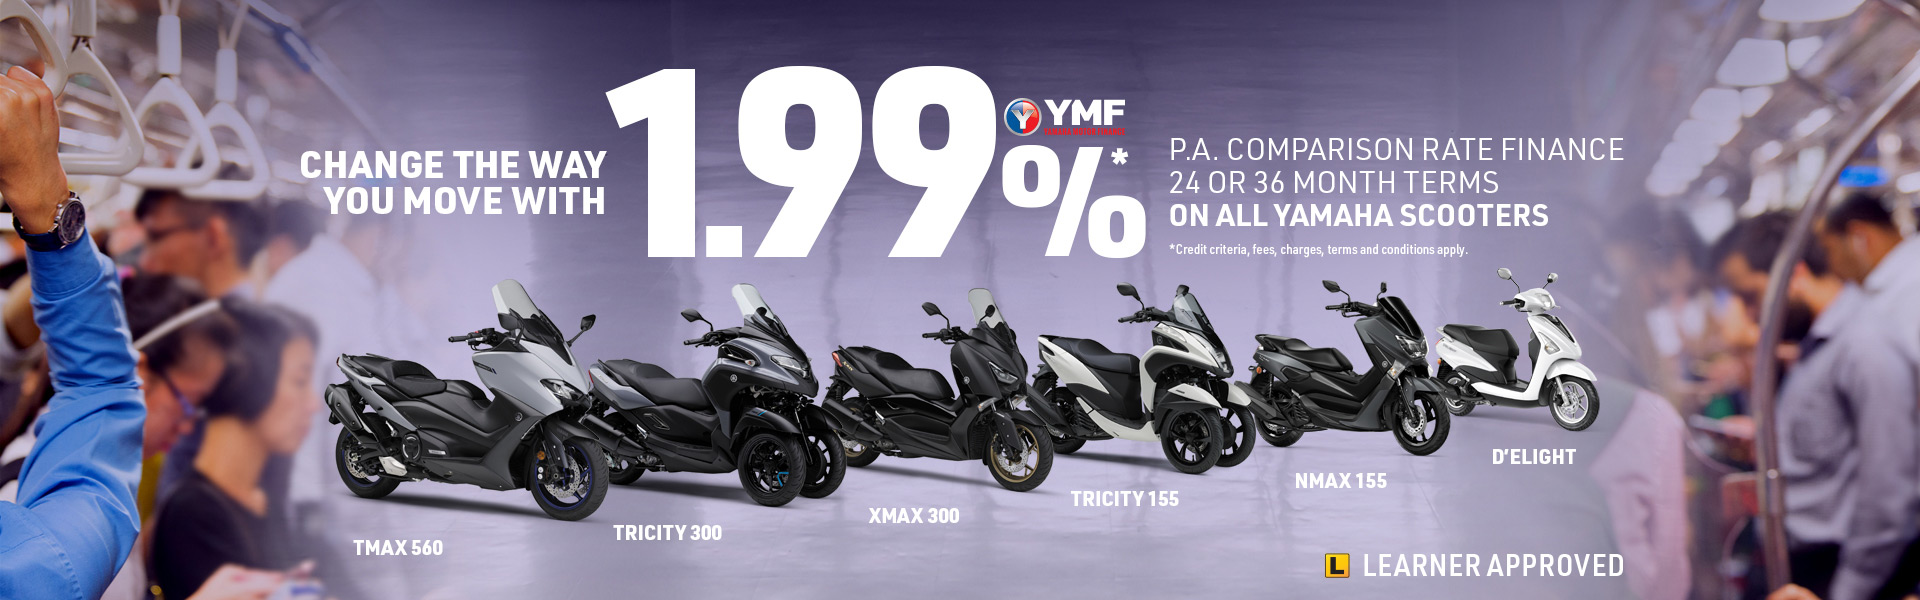 2021_Scooter_Finance_1920x600